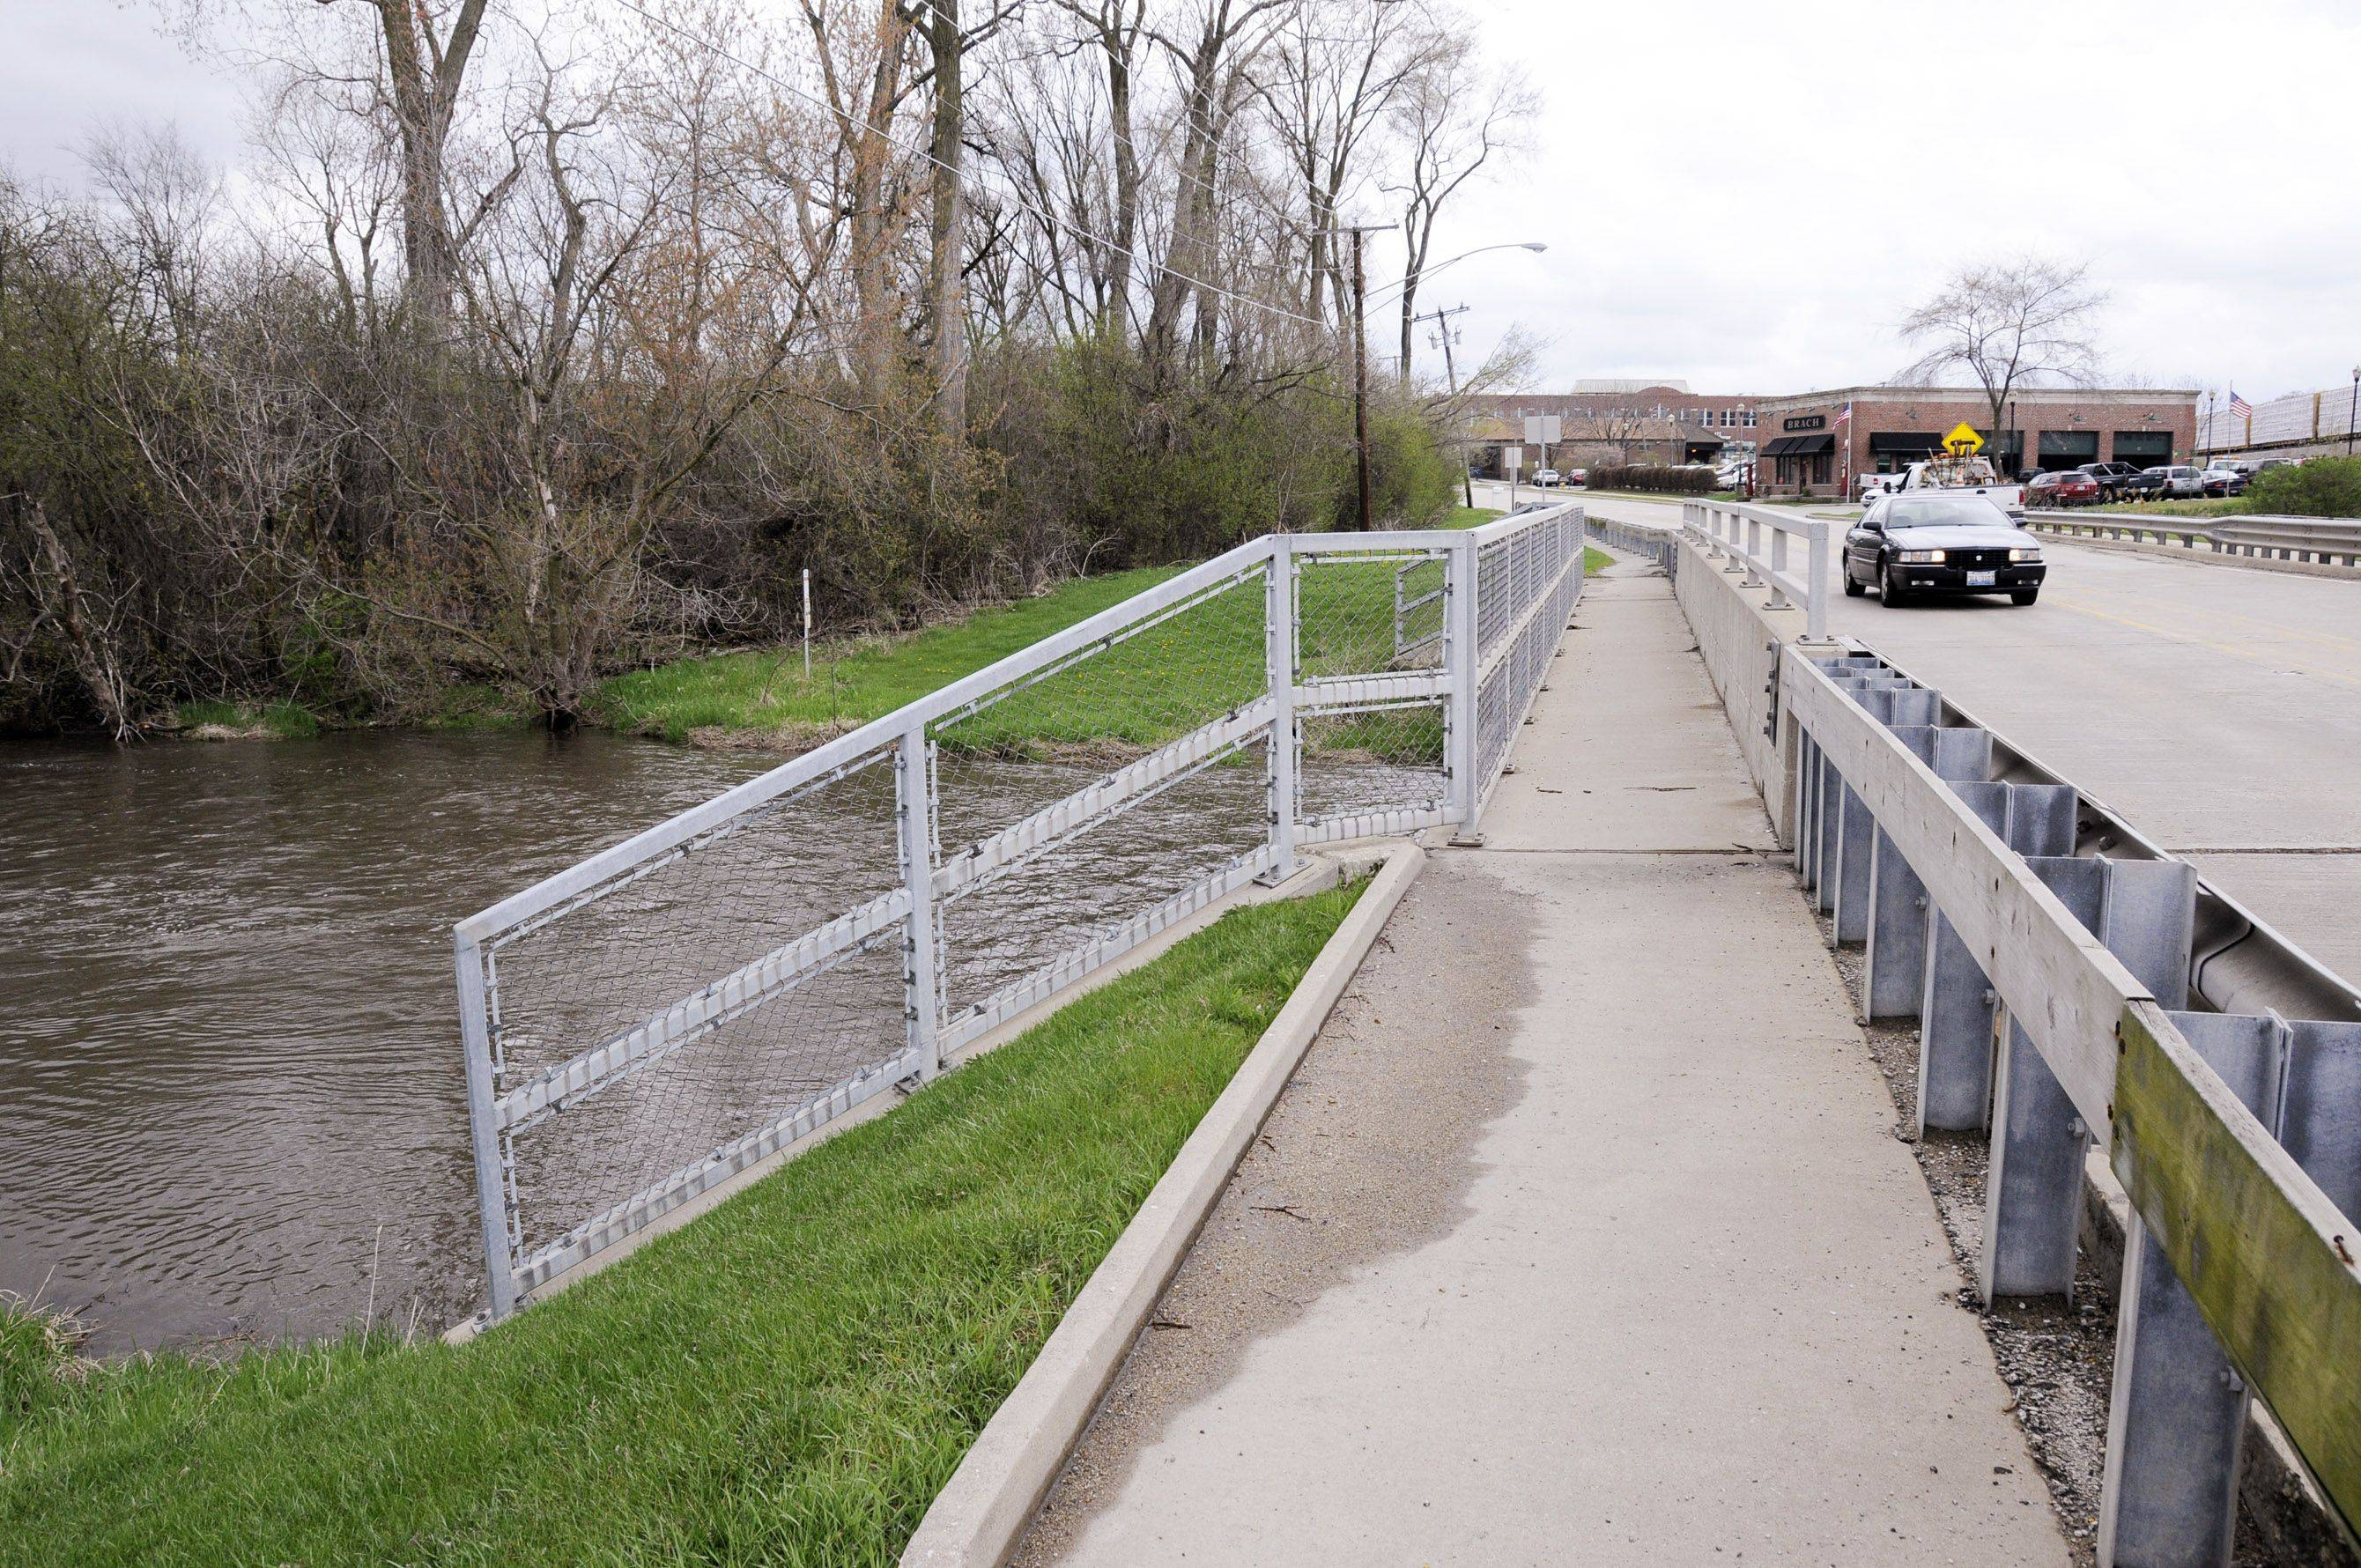 A Winfield resident has come out firing against a proposed riverwalk just west of downtown. Randy Voss says the project should not include any public funding because it�s nothing more than a pet project of a local political group.